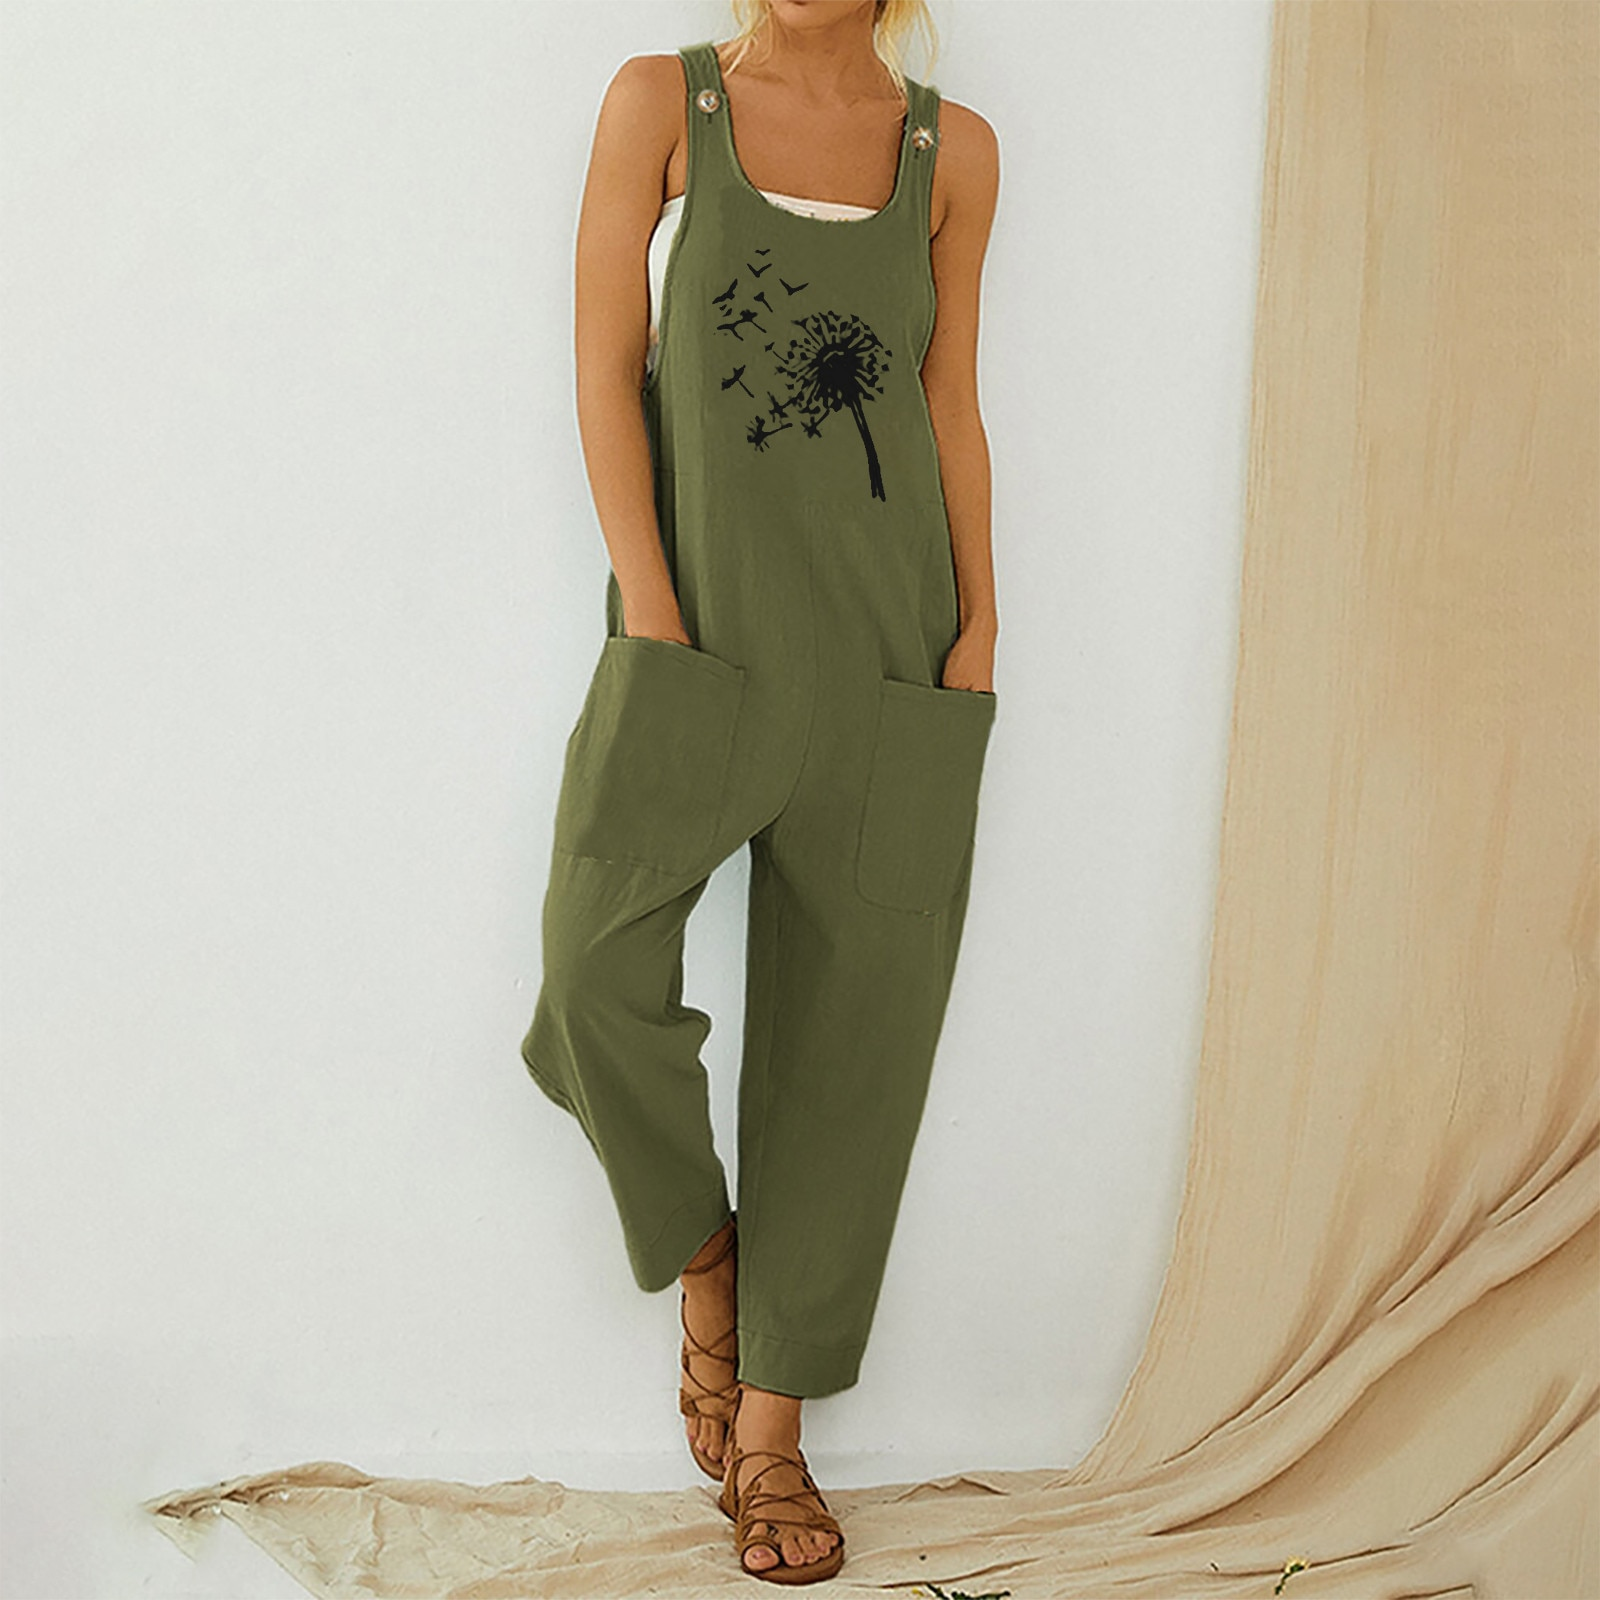 Romper Women Casual Boho Floral Print Jumpsuit Pocket Long Playsuit Strap Sexy Button Clothing mujer боди женское